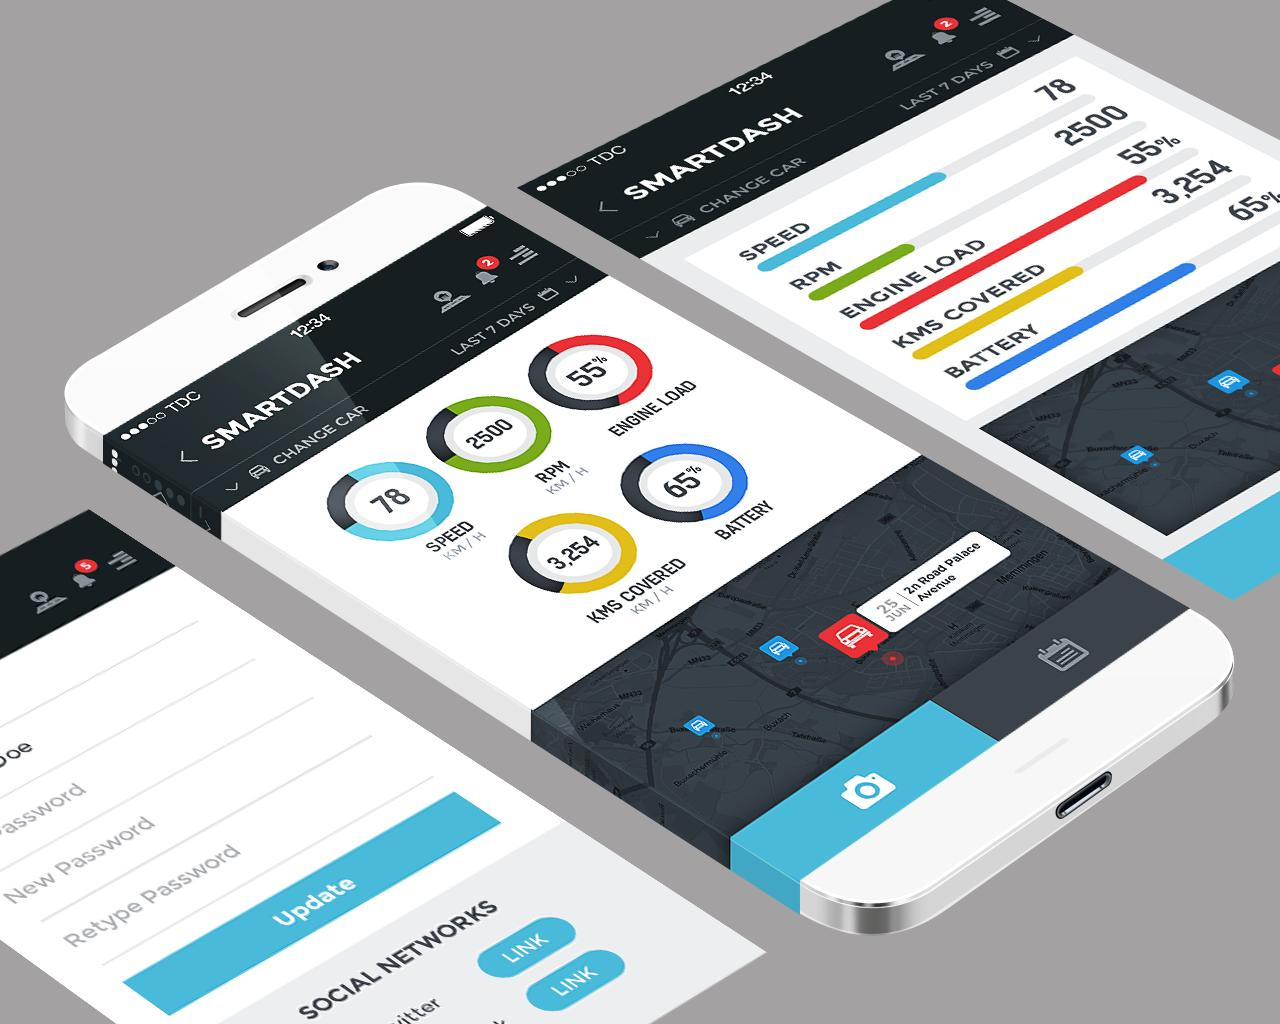 Premium Mobile Application UI Design PSD ( iOS / Android ) by vector_factory - 91489